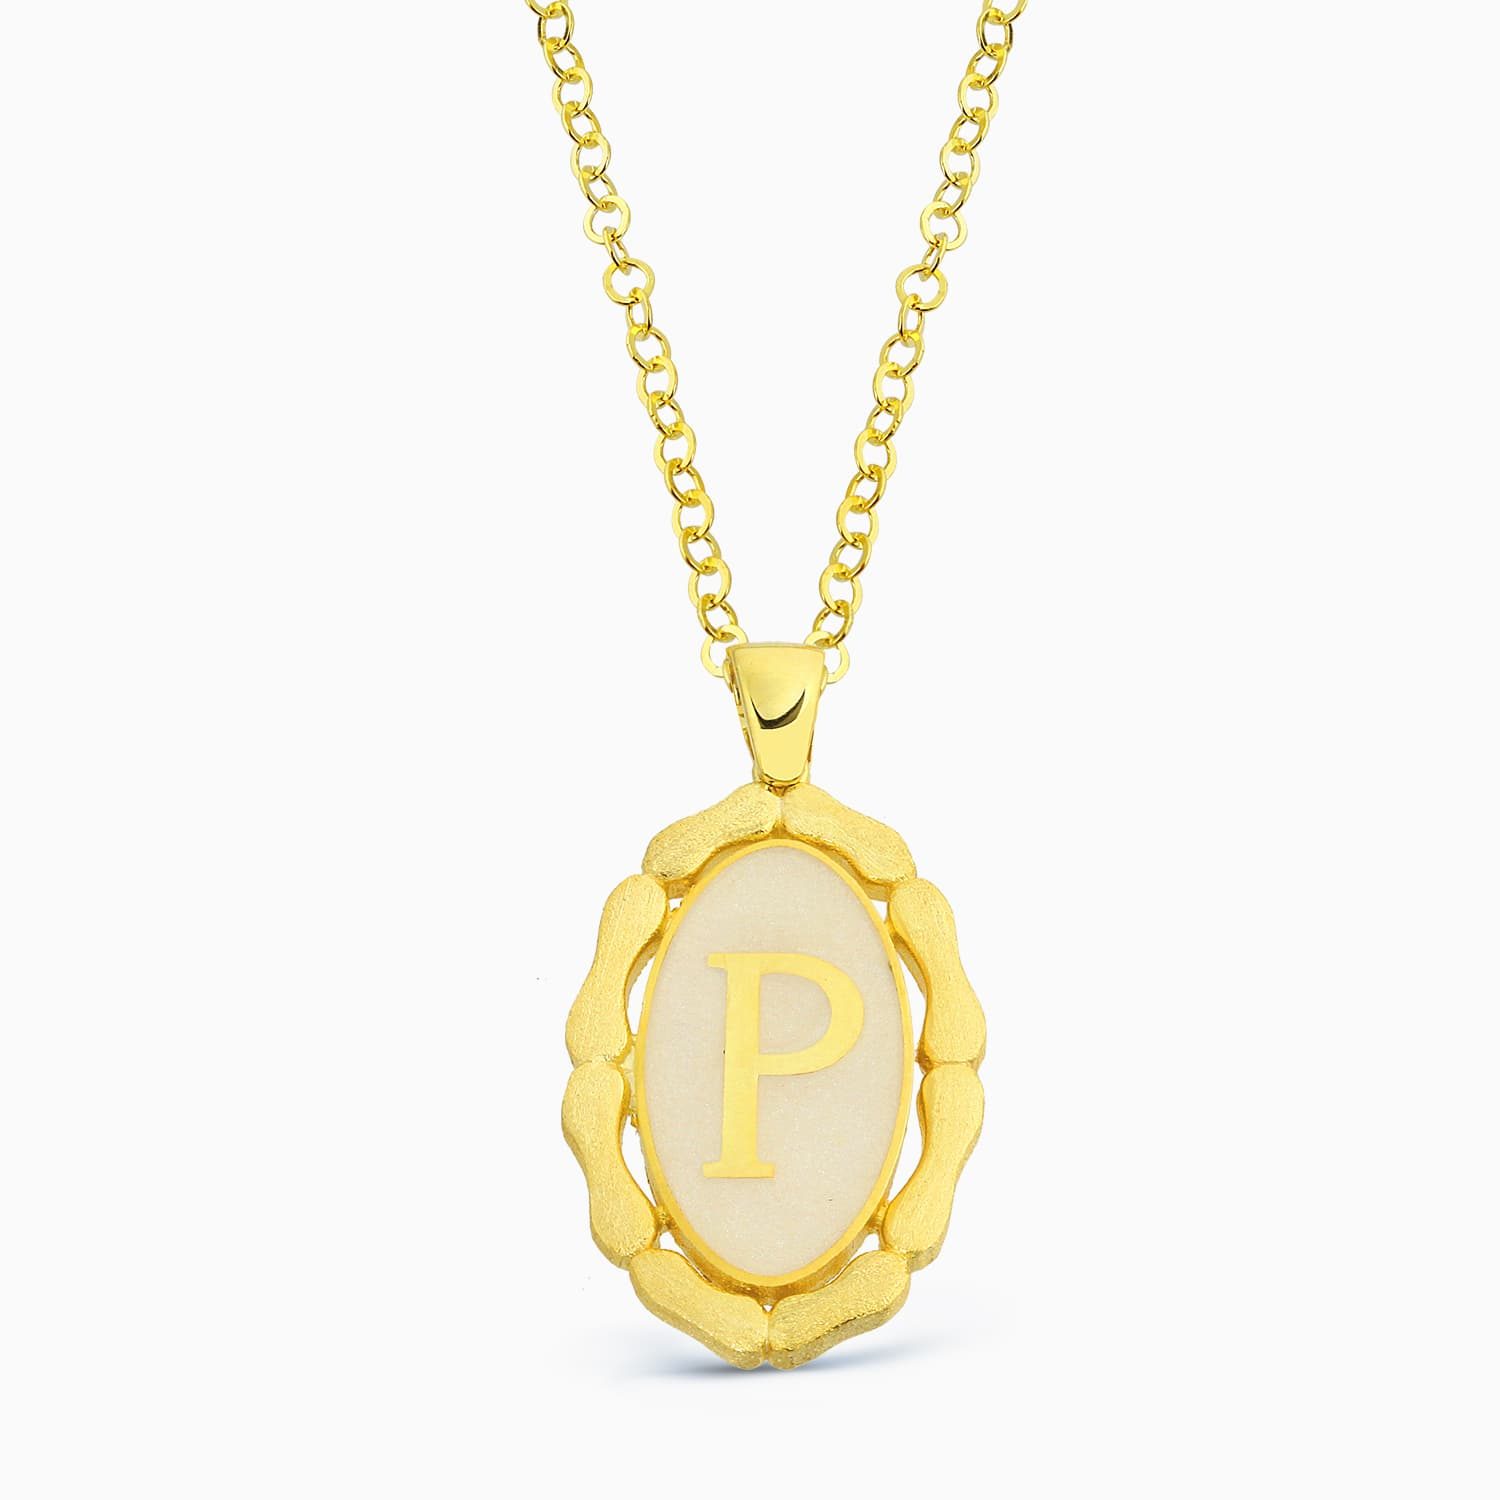 LETTER P MINNED NECKLACE